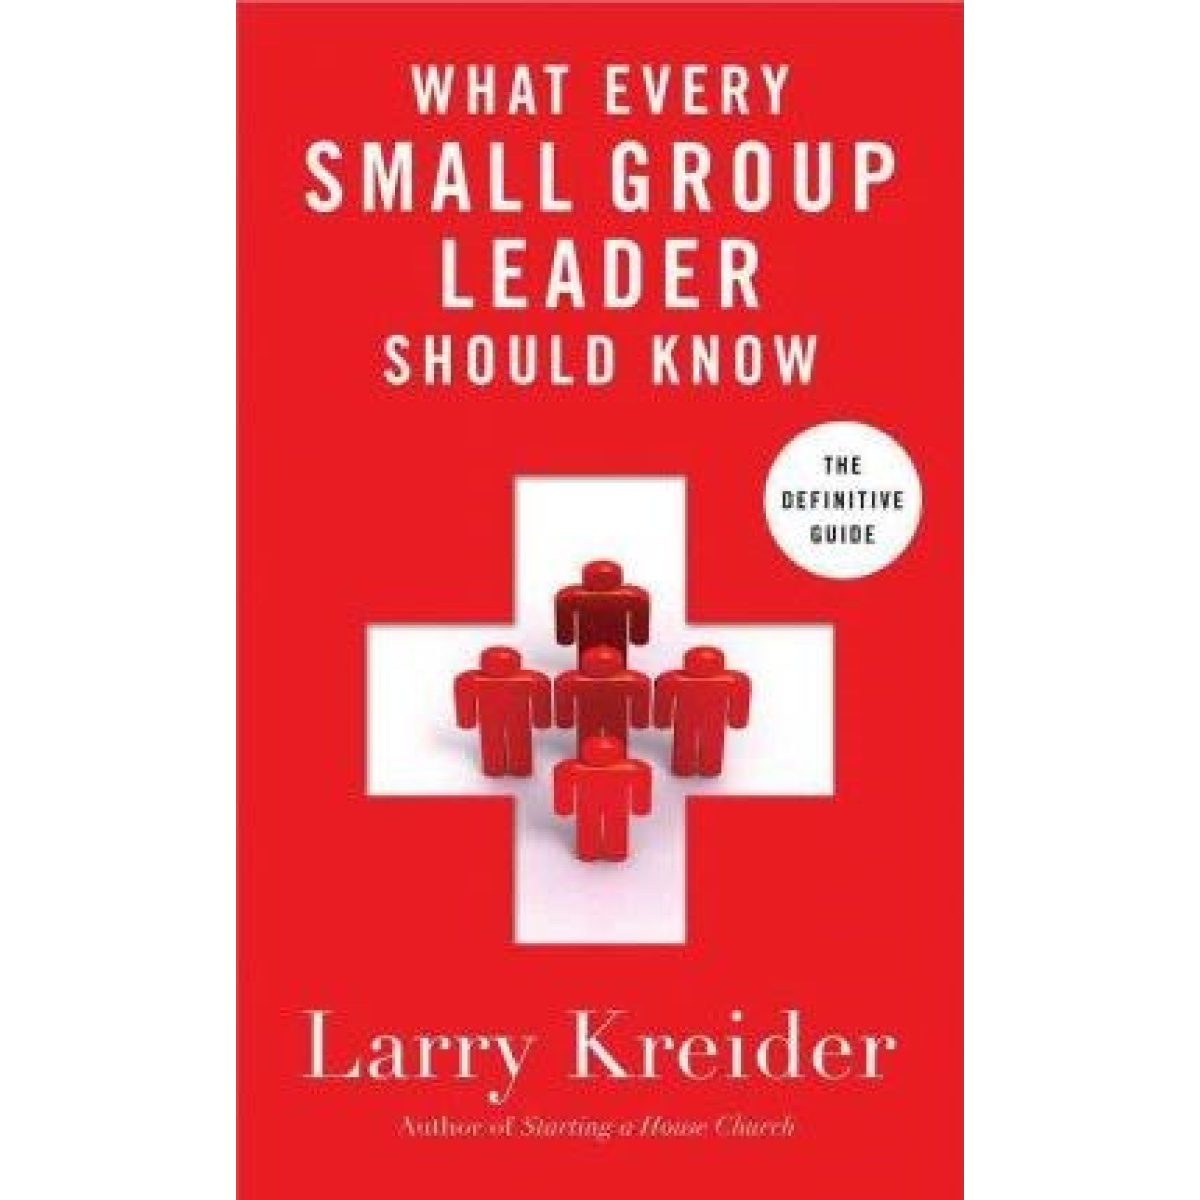 What every small group leader should know Larry Kreider Novia